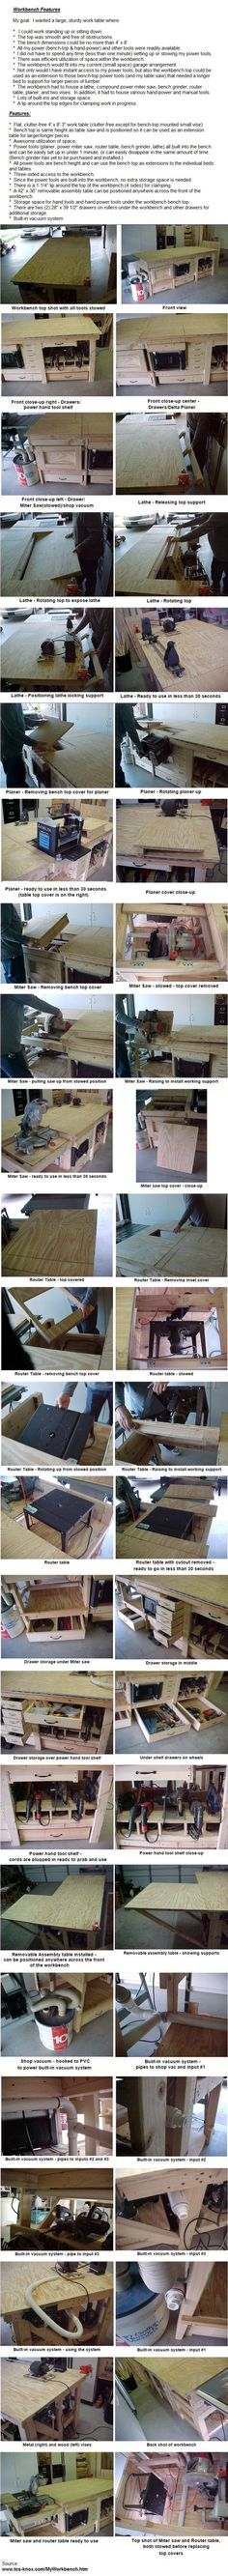 Check out this awesome Workbench | WoodworkerZ.com